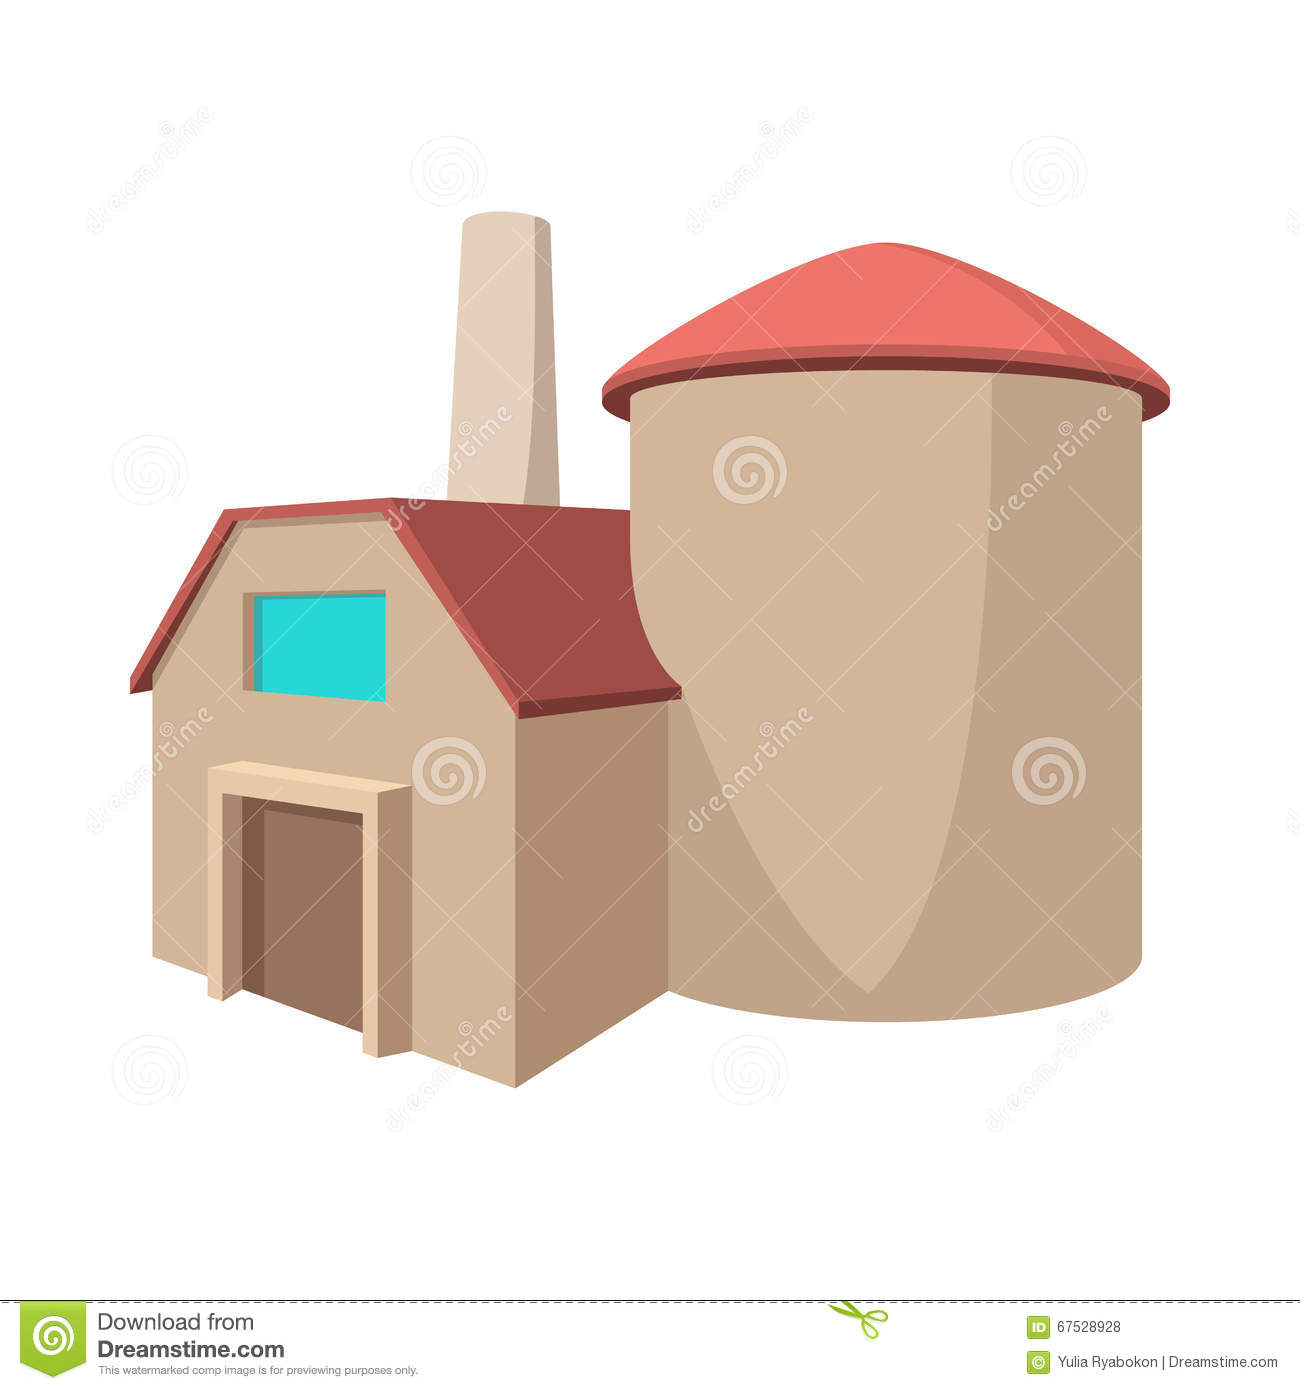 Factory Building Cartoon Icon Stock Vector - Image: 67528928